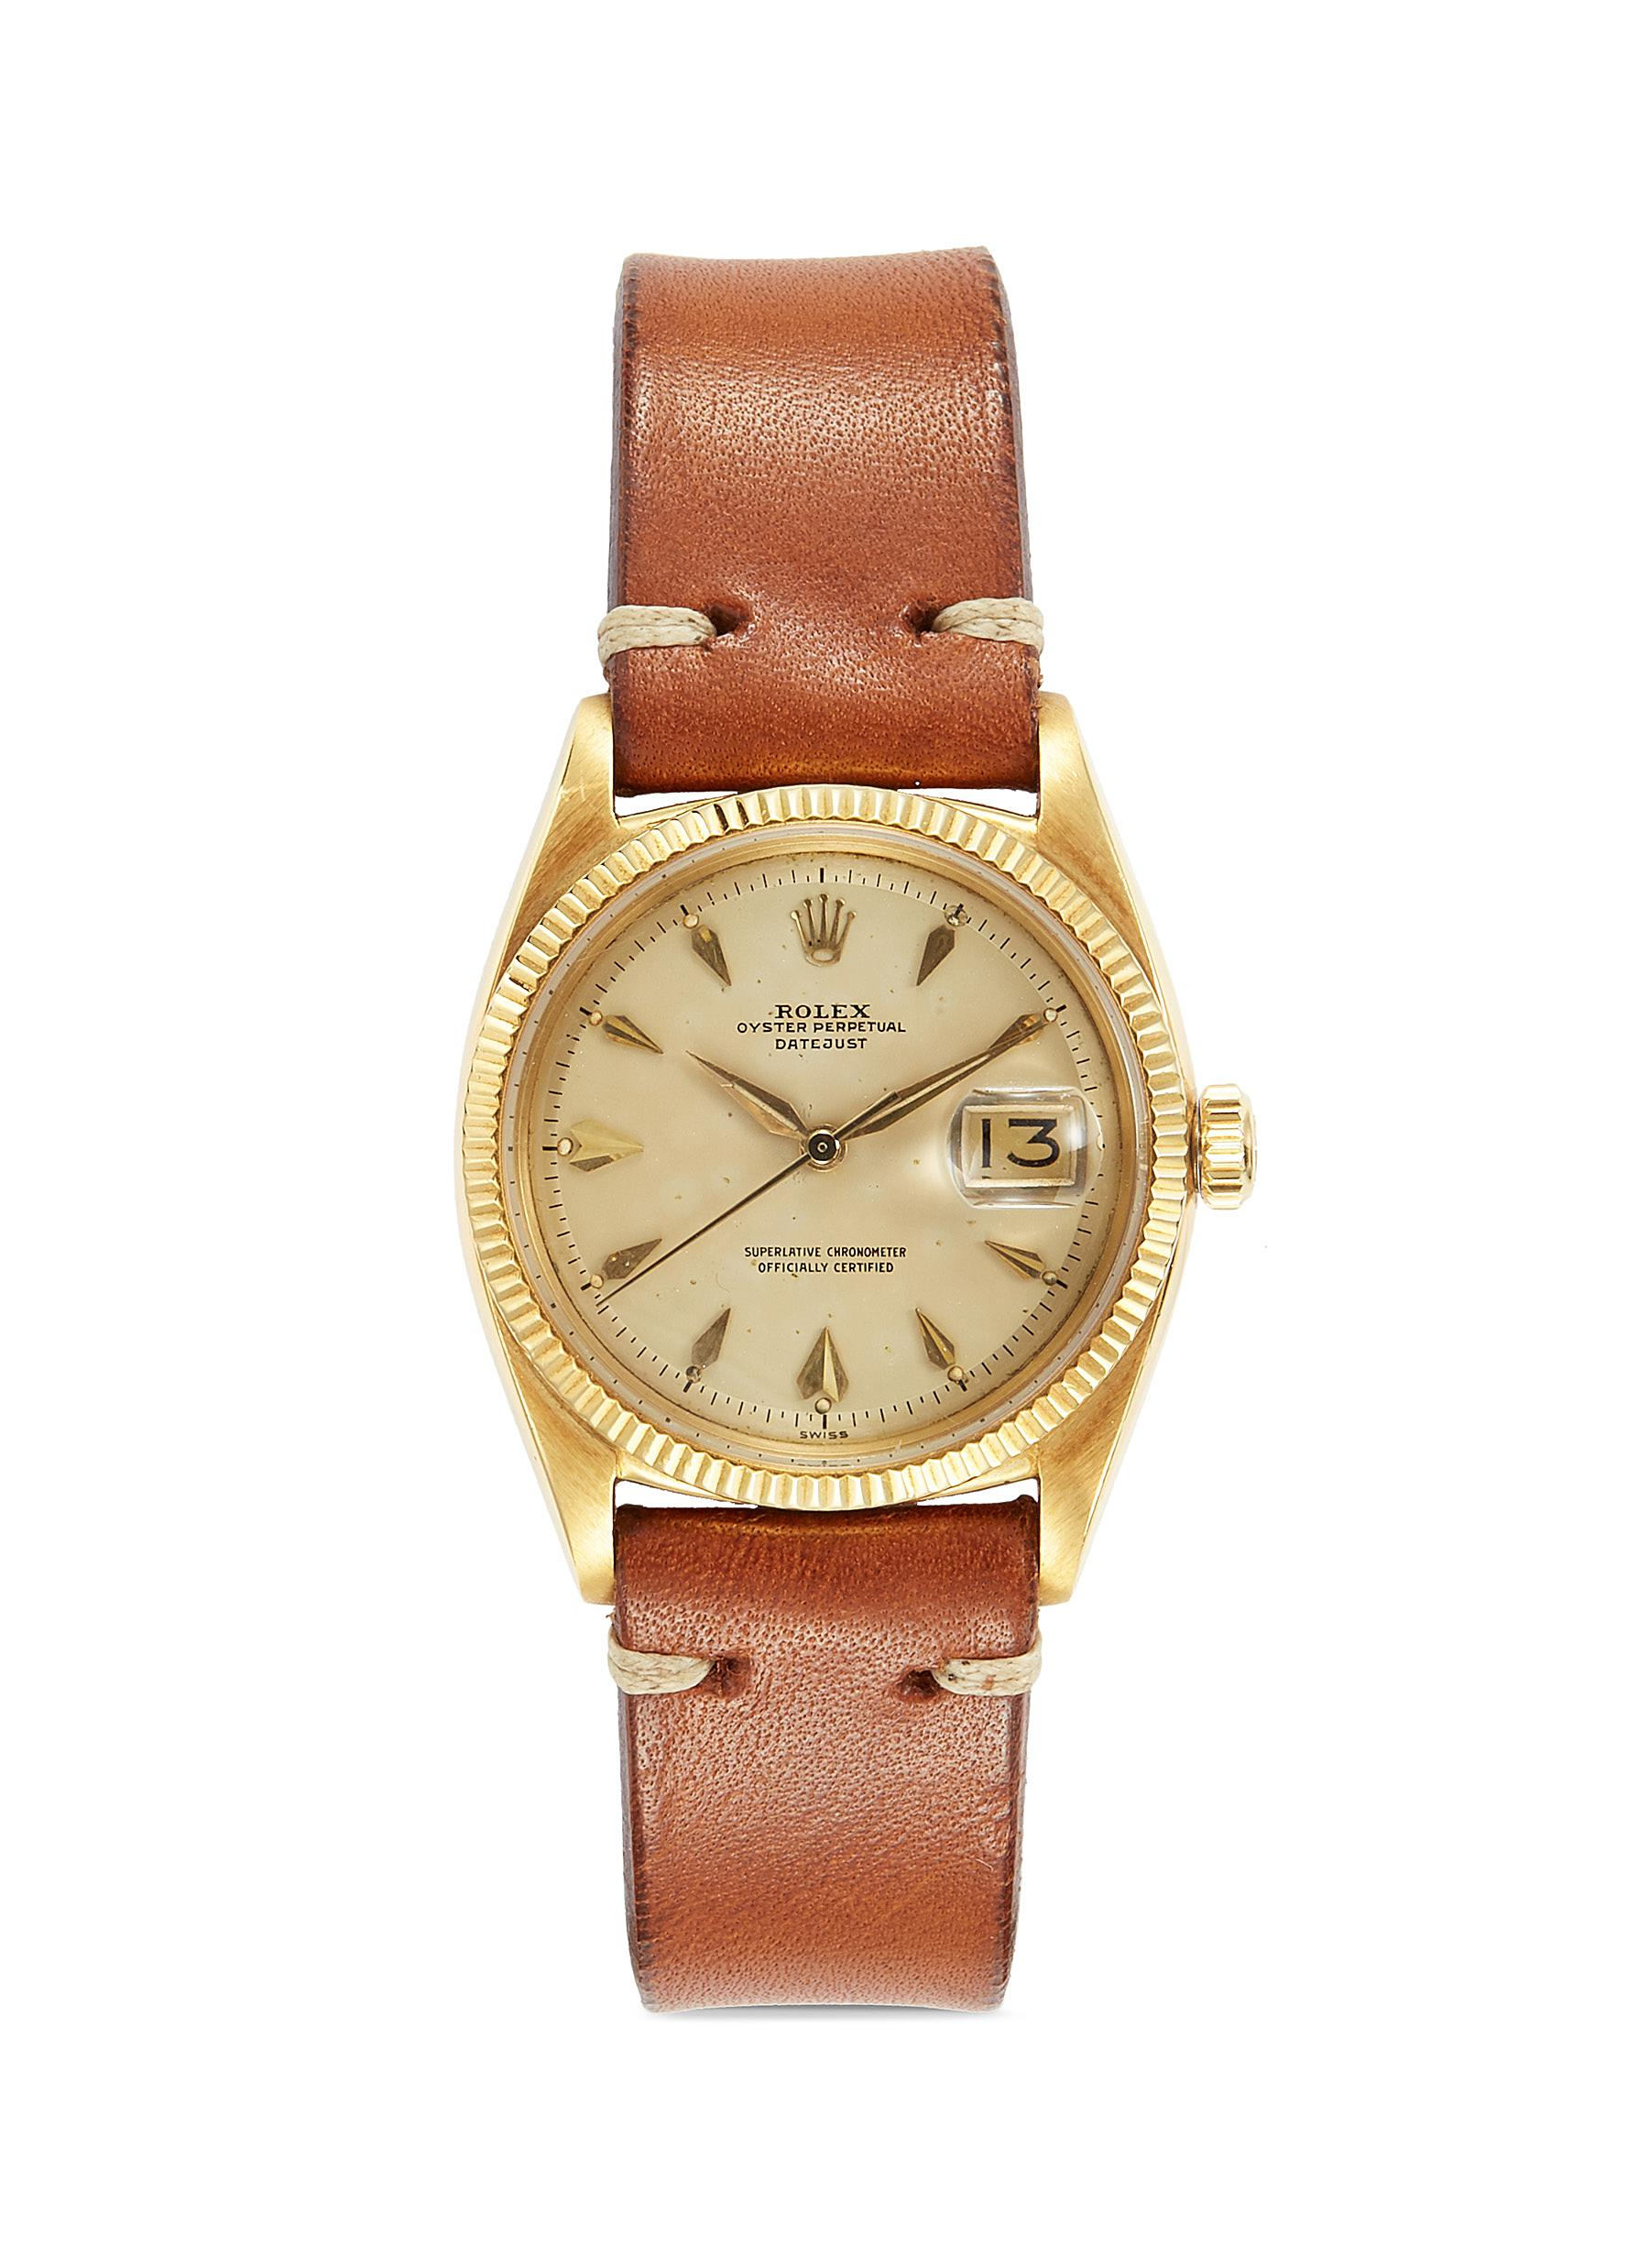 6888c8c96dd1d Lane Crawford Vintage Collection. Rolex DateJust Oyster Perpetual 18k  yellow gold 6605 watch